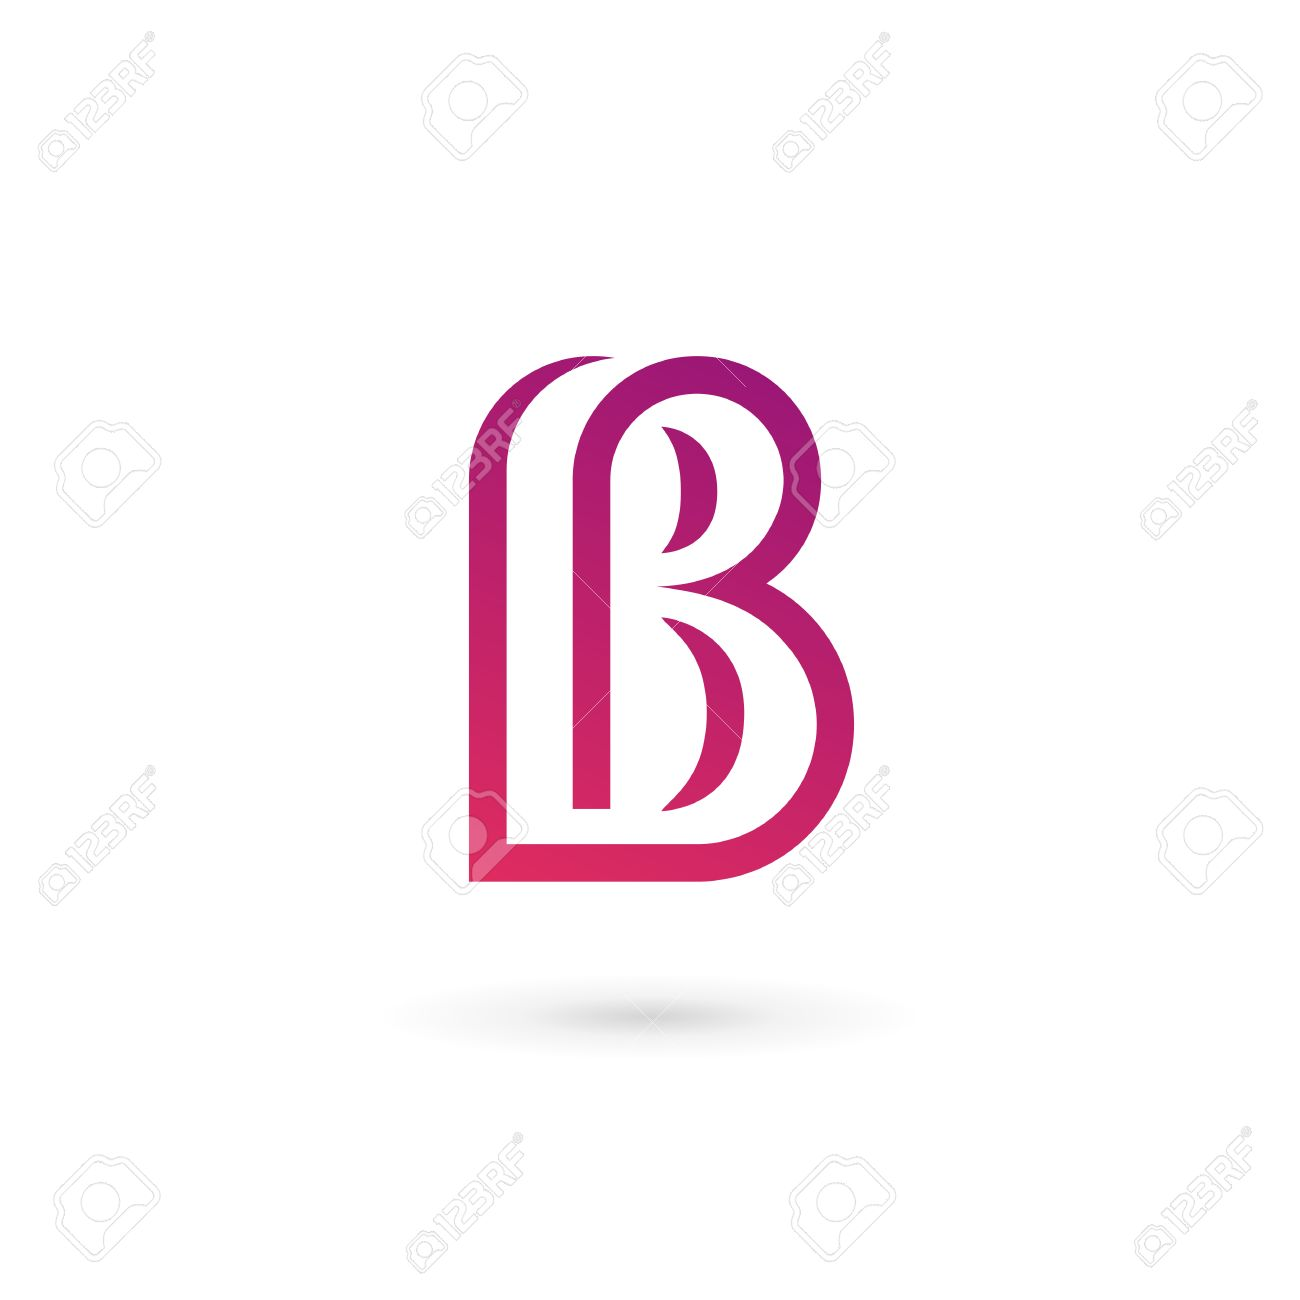 Letter B Stock Photos. Royalty Free Letter B Images